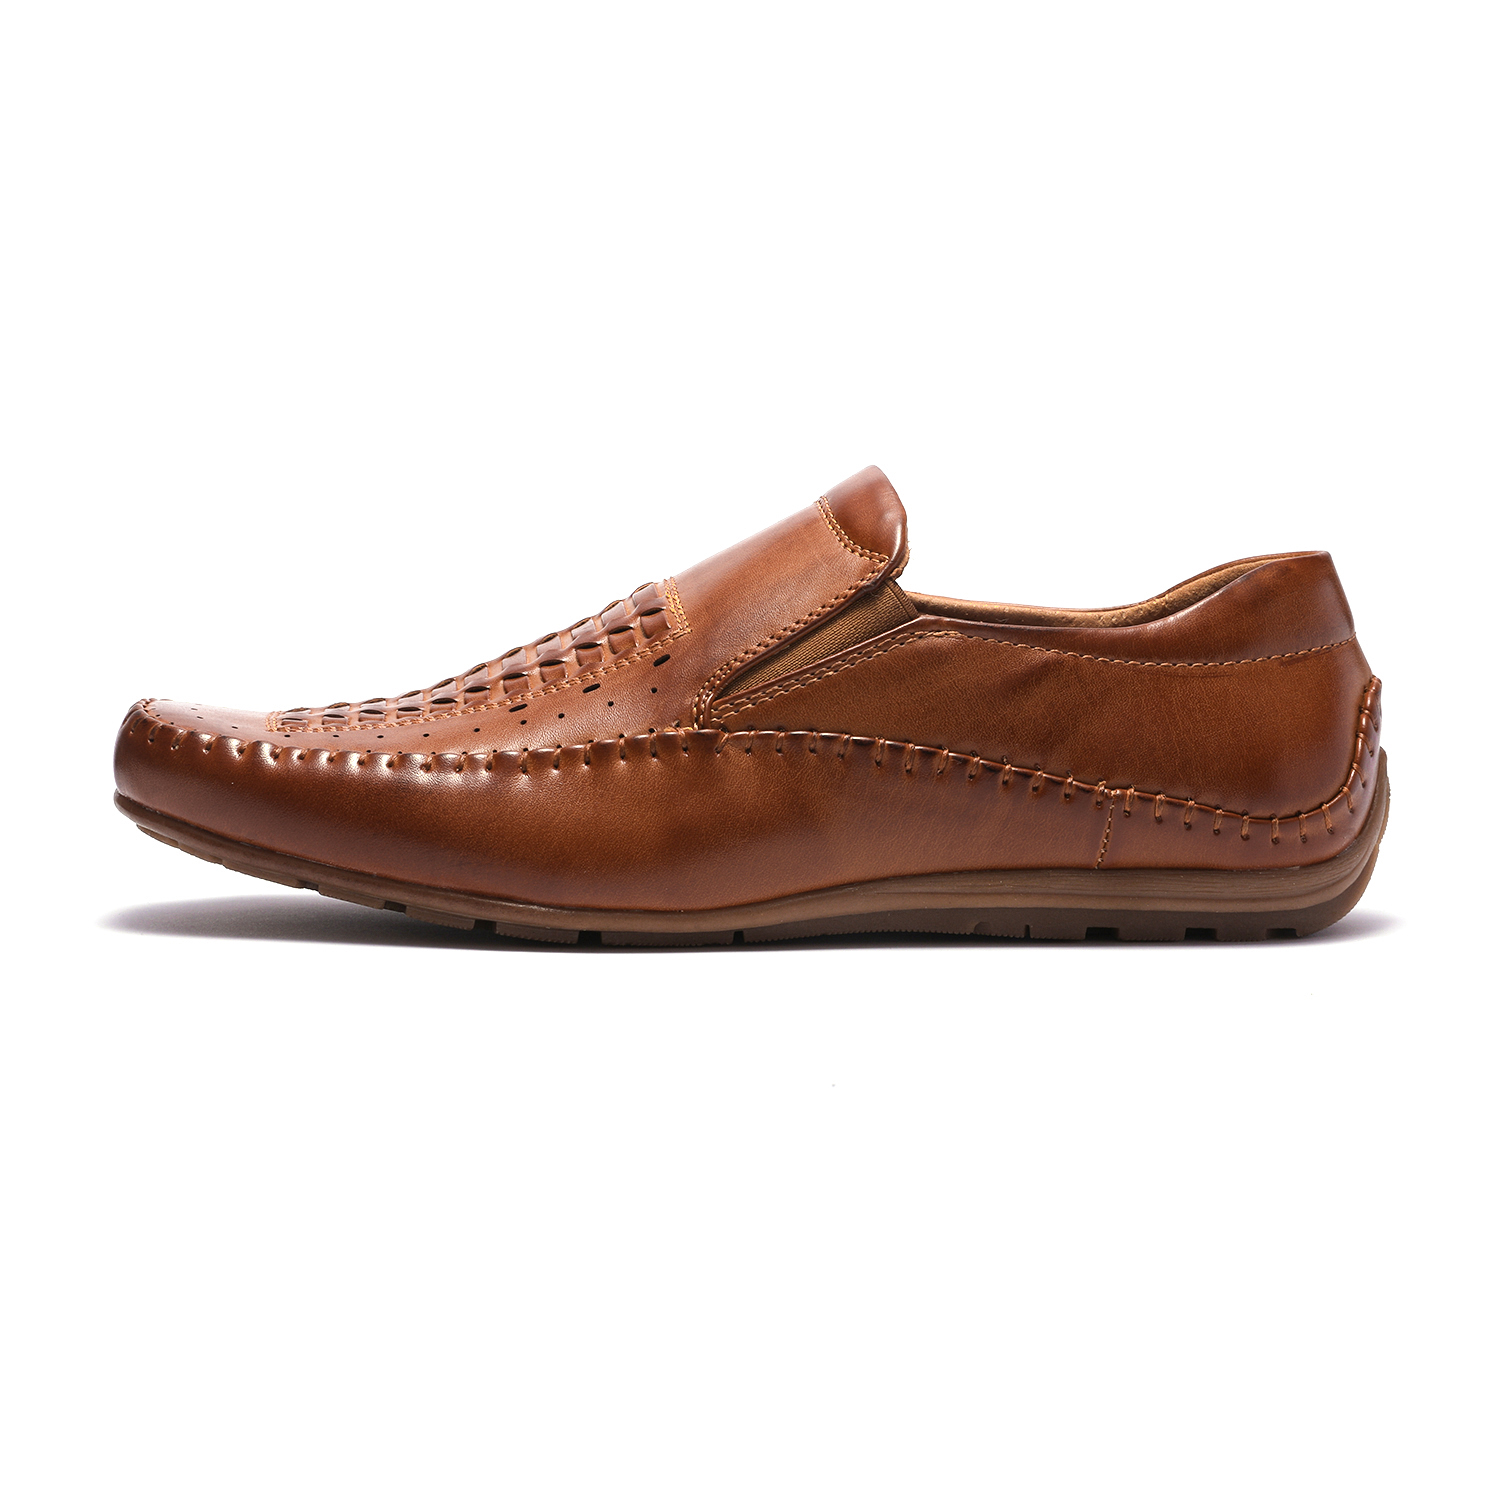 Bruno-Marc-Mens-Penny-Light-Loafers-Moccasins-Driving-Flats-Slip-On-Casual-Shoes thumbnail 21